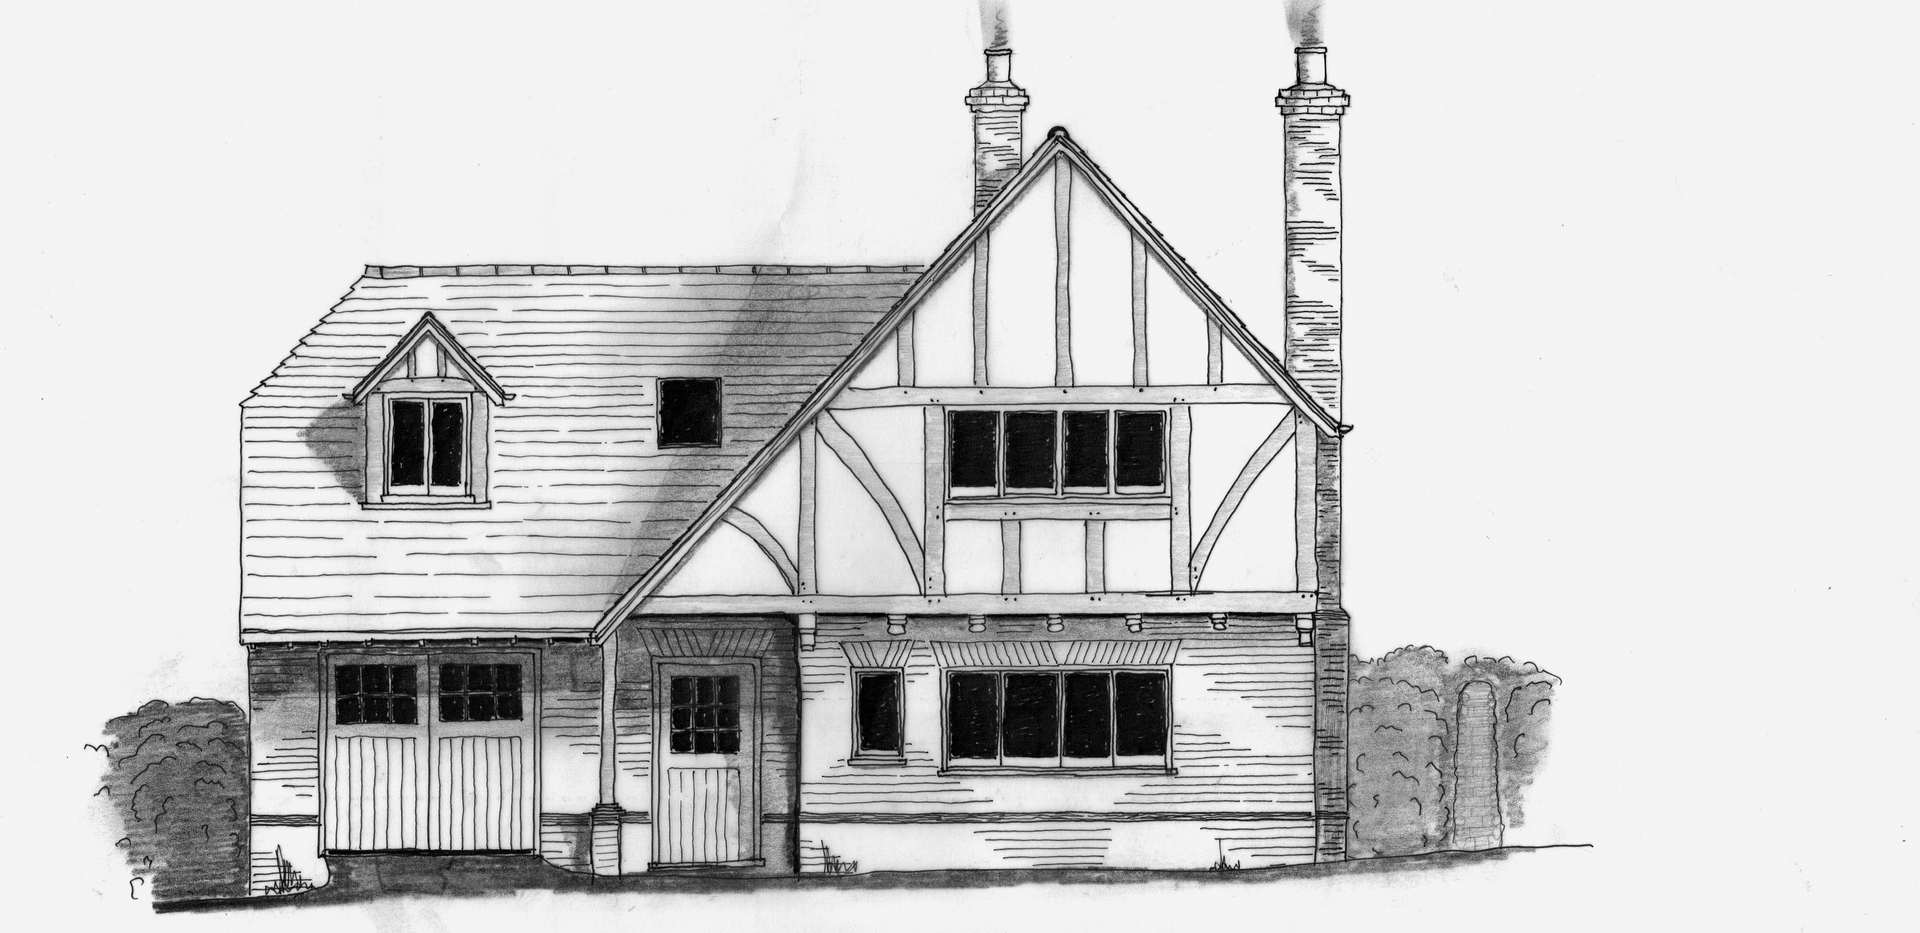 House hand drawn for Planning Stage